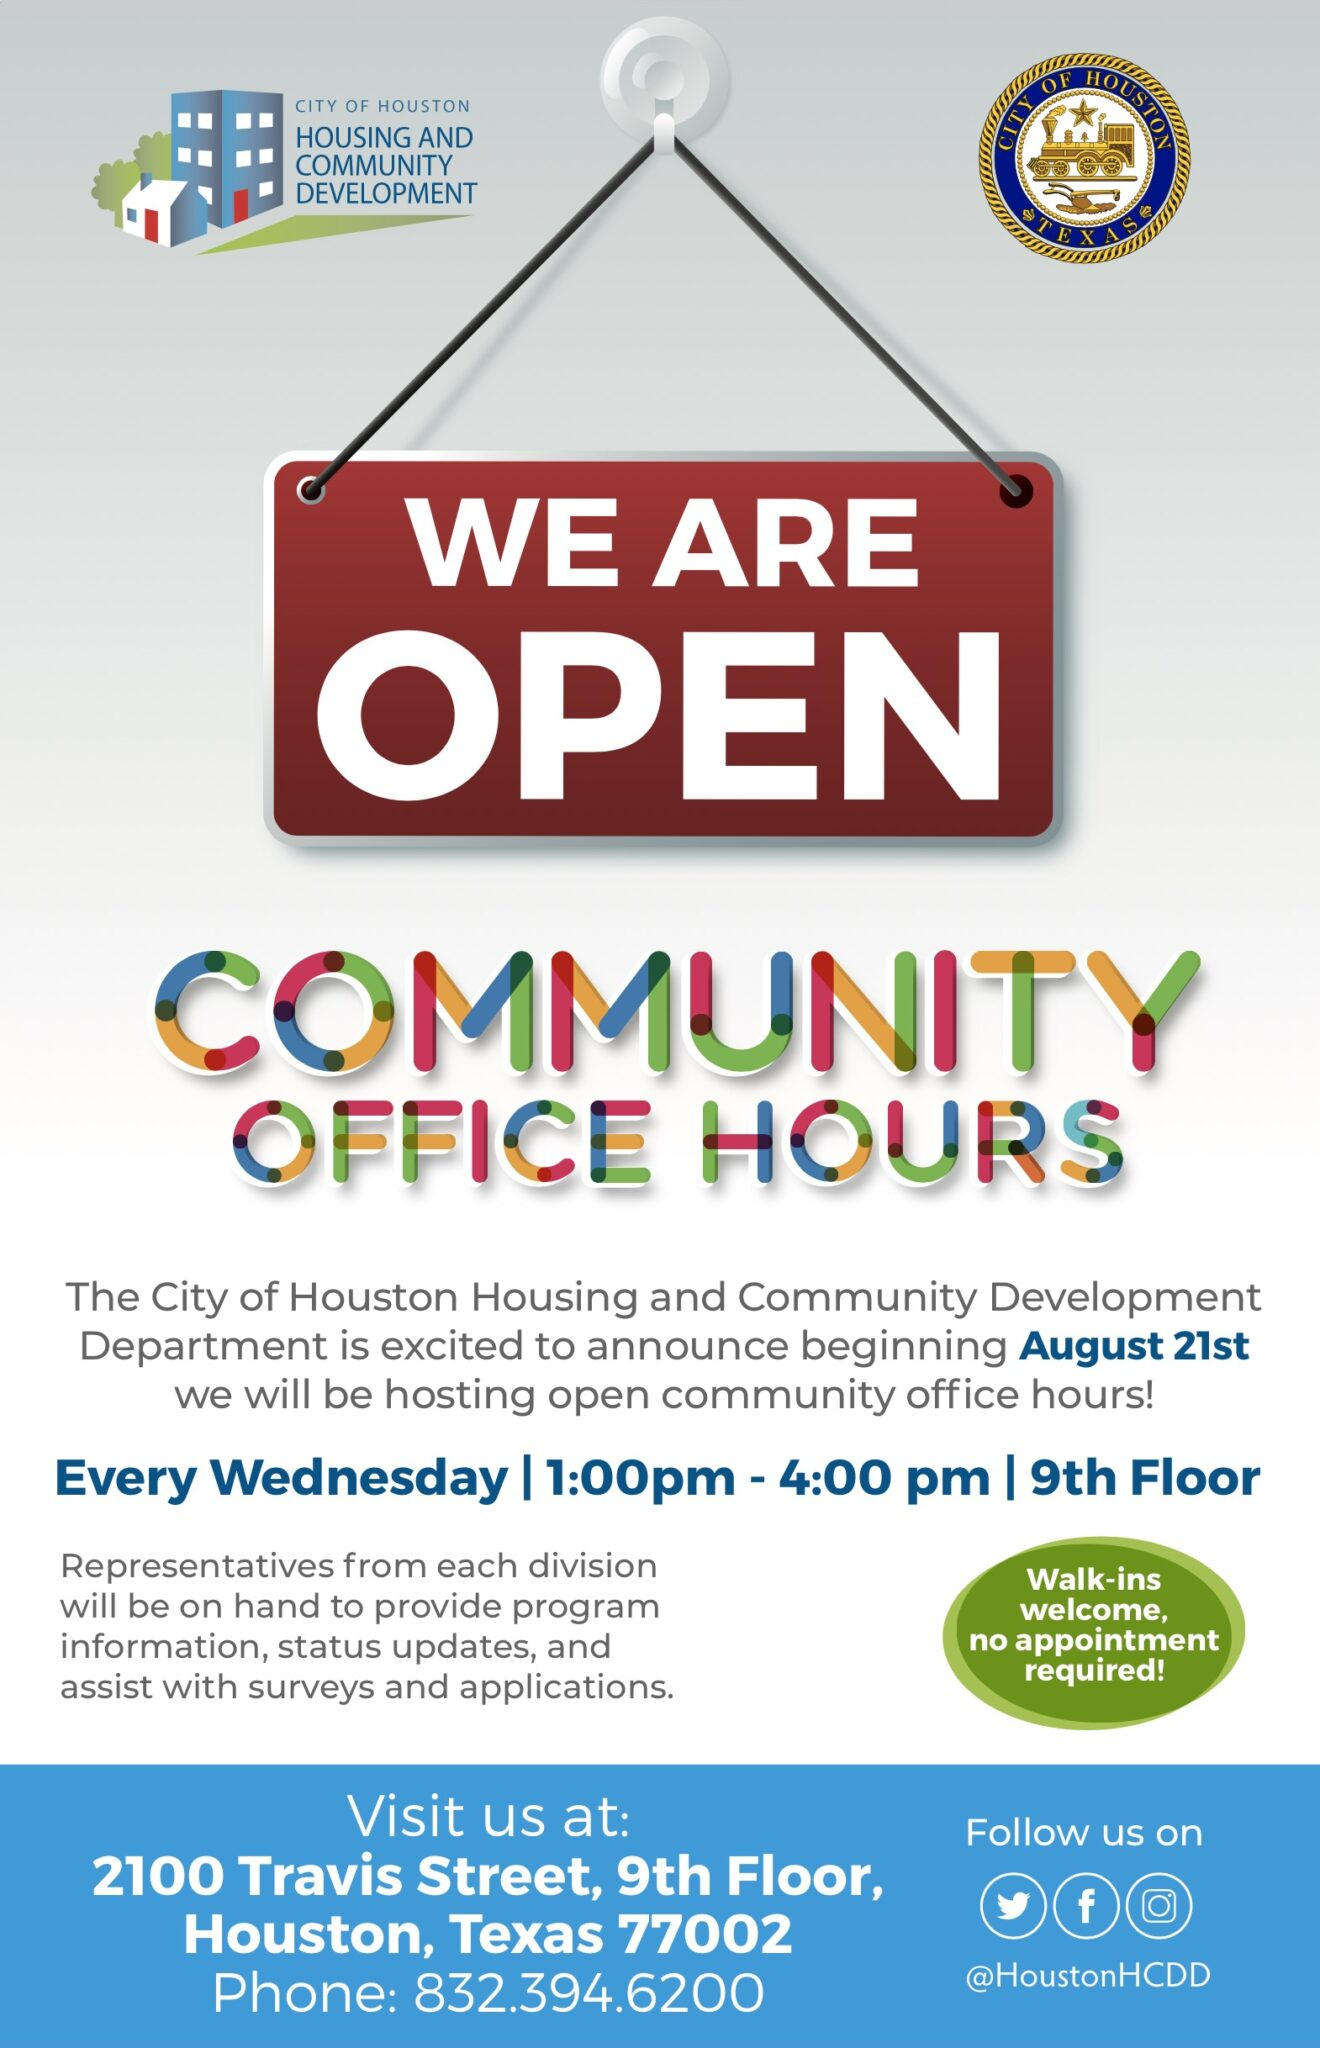 Community Office Hours Flyer